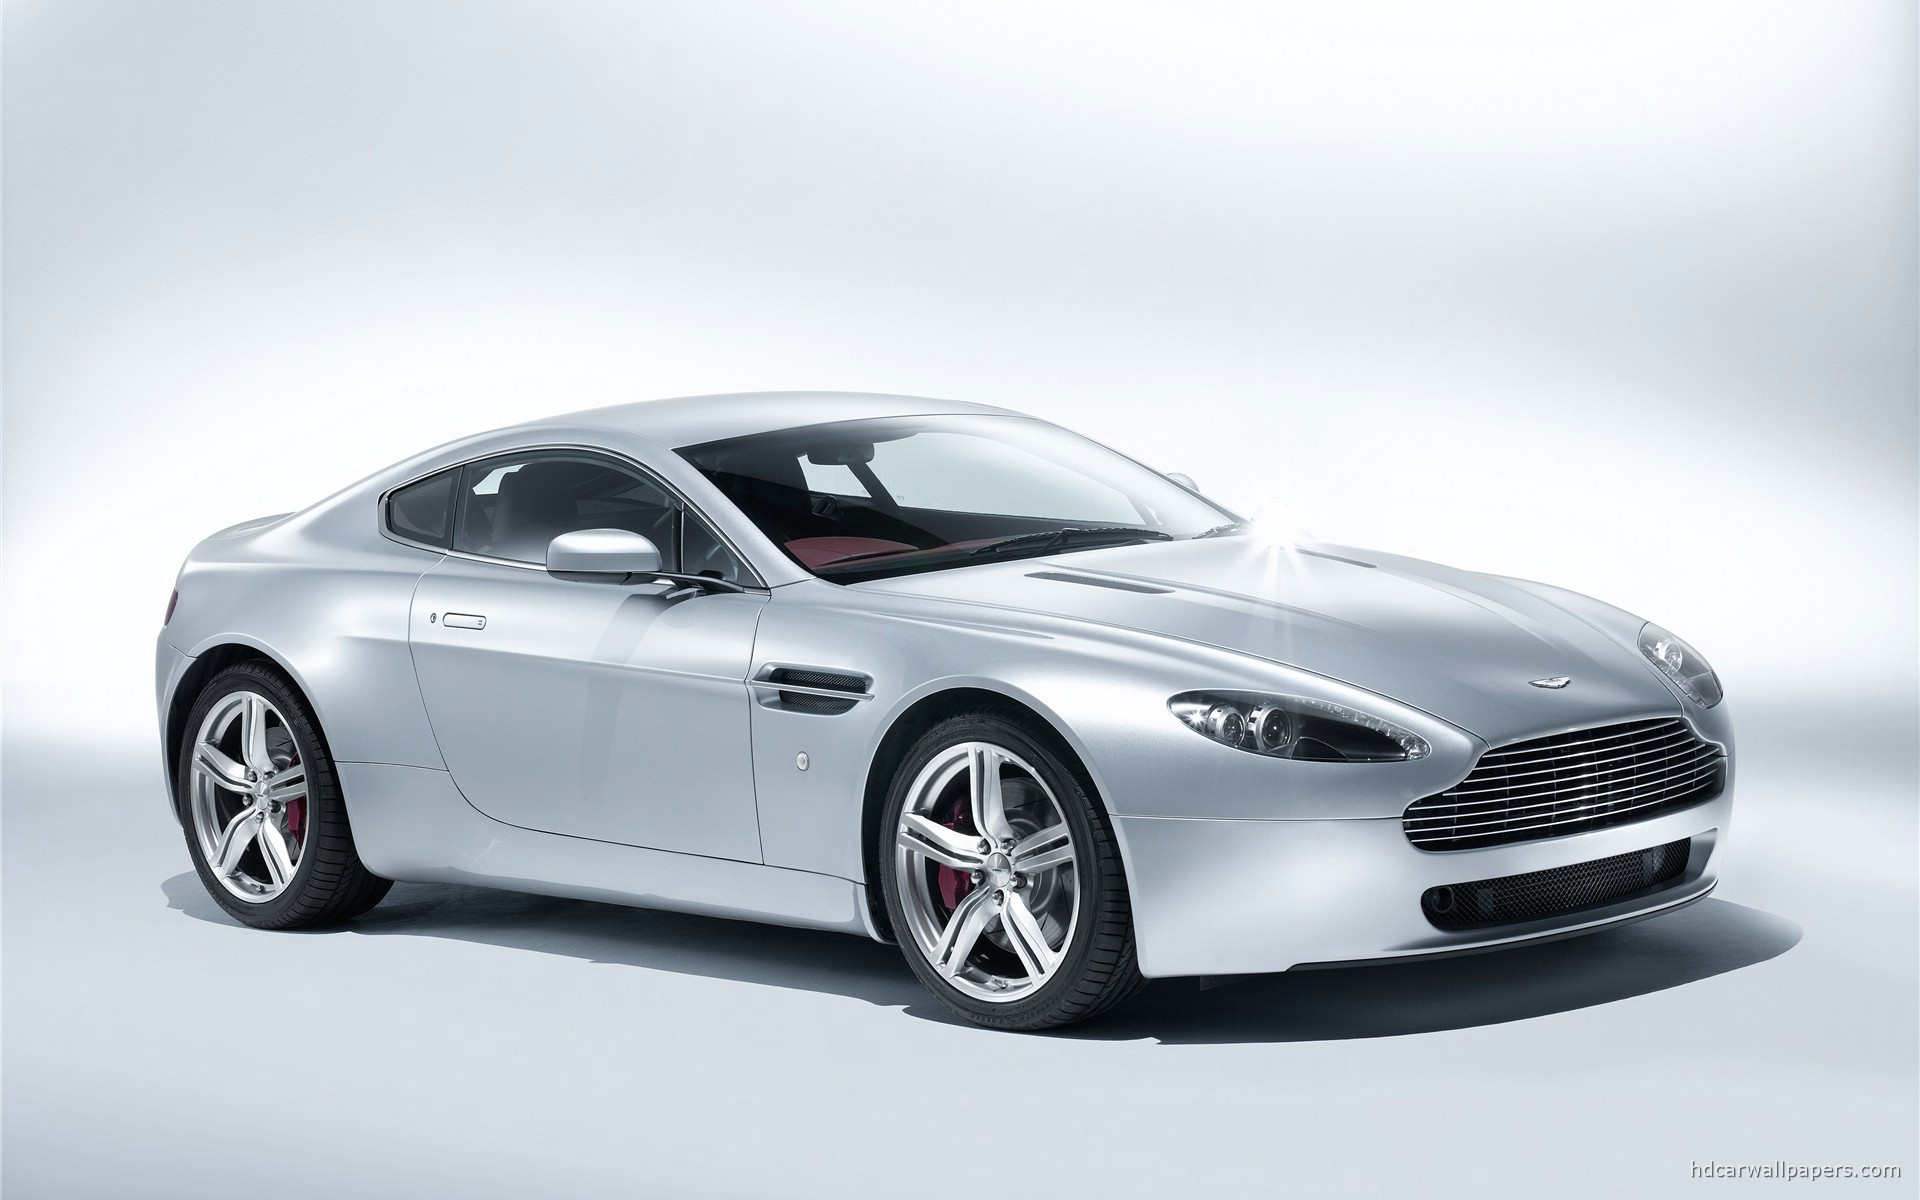 aston martin v8 vantage coupe 2009 wallpaper hd car wallpapers id 50. Black Bedroom Furniture Sets. Home Design Ideas